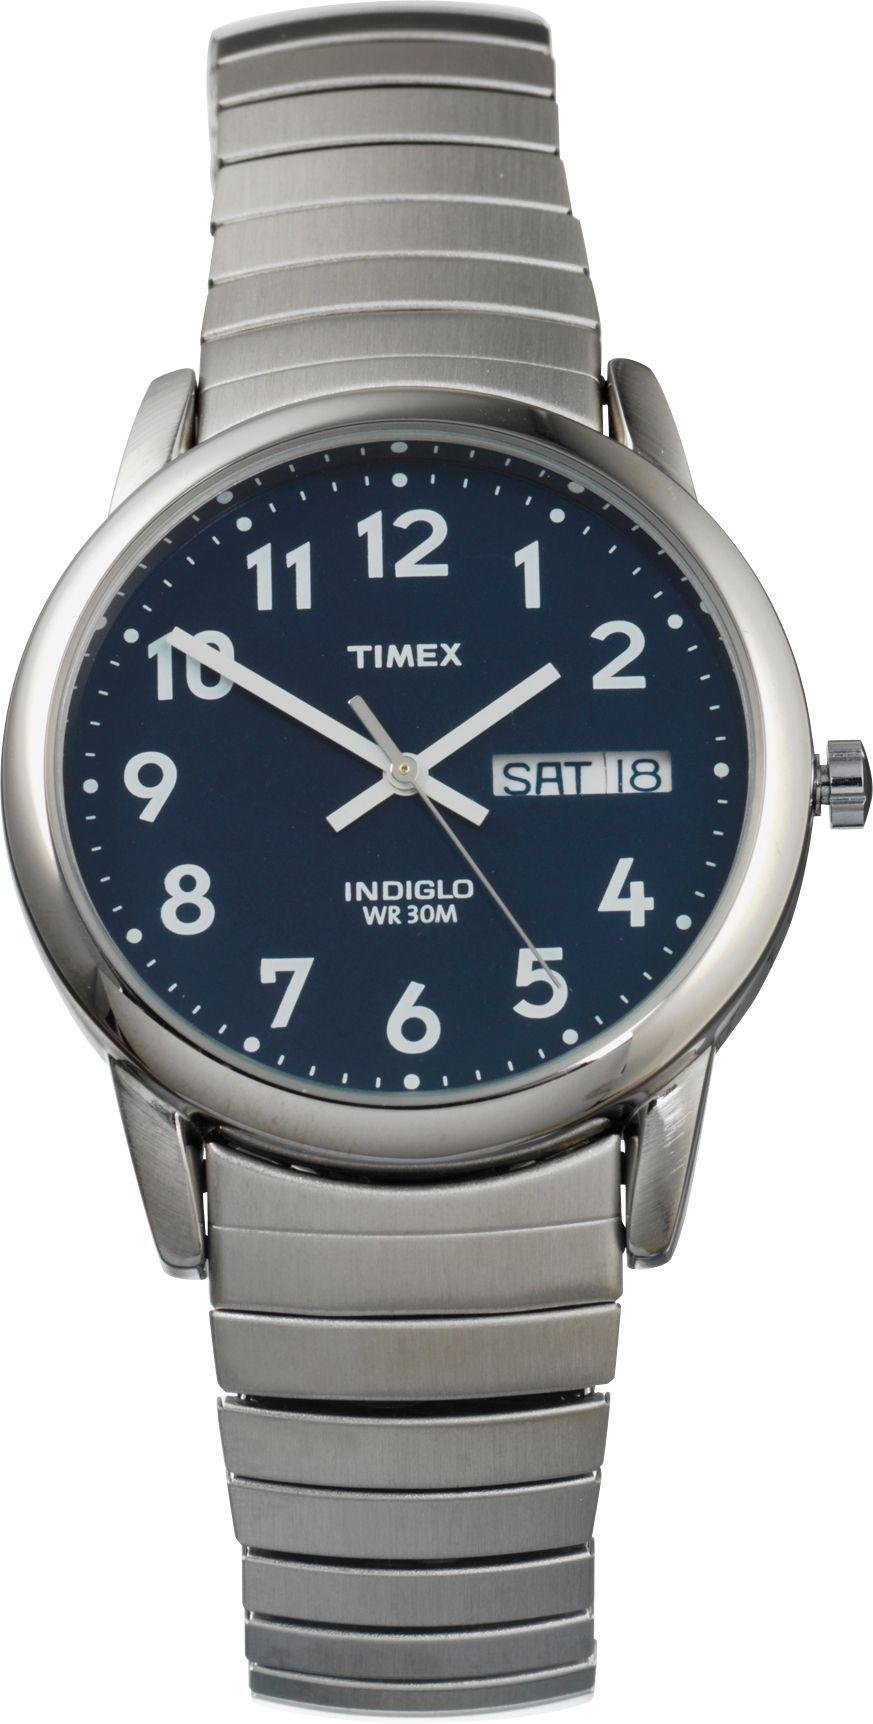 Timex - Mens Classic Indiglo Blue Dial Expander - Watch from Timex